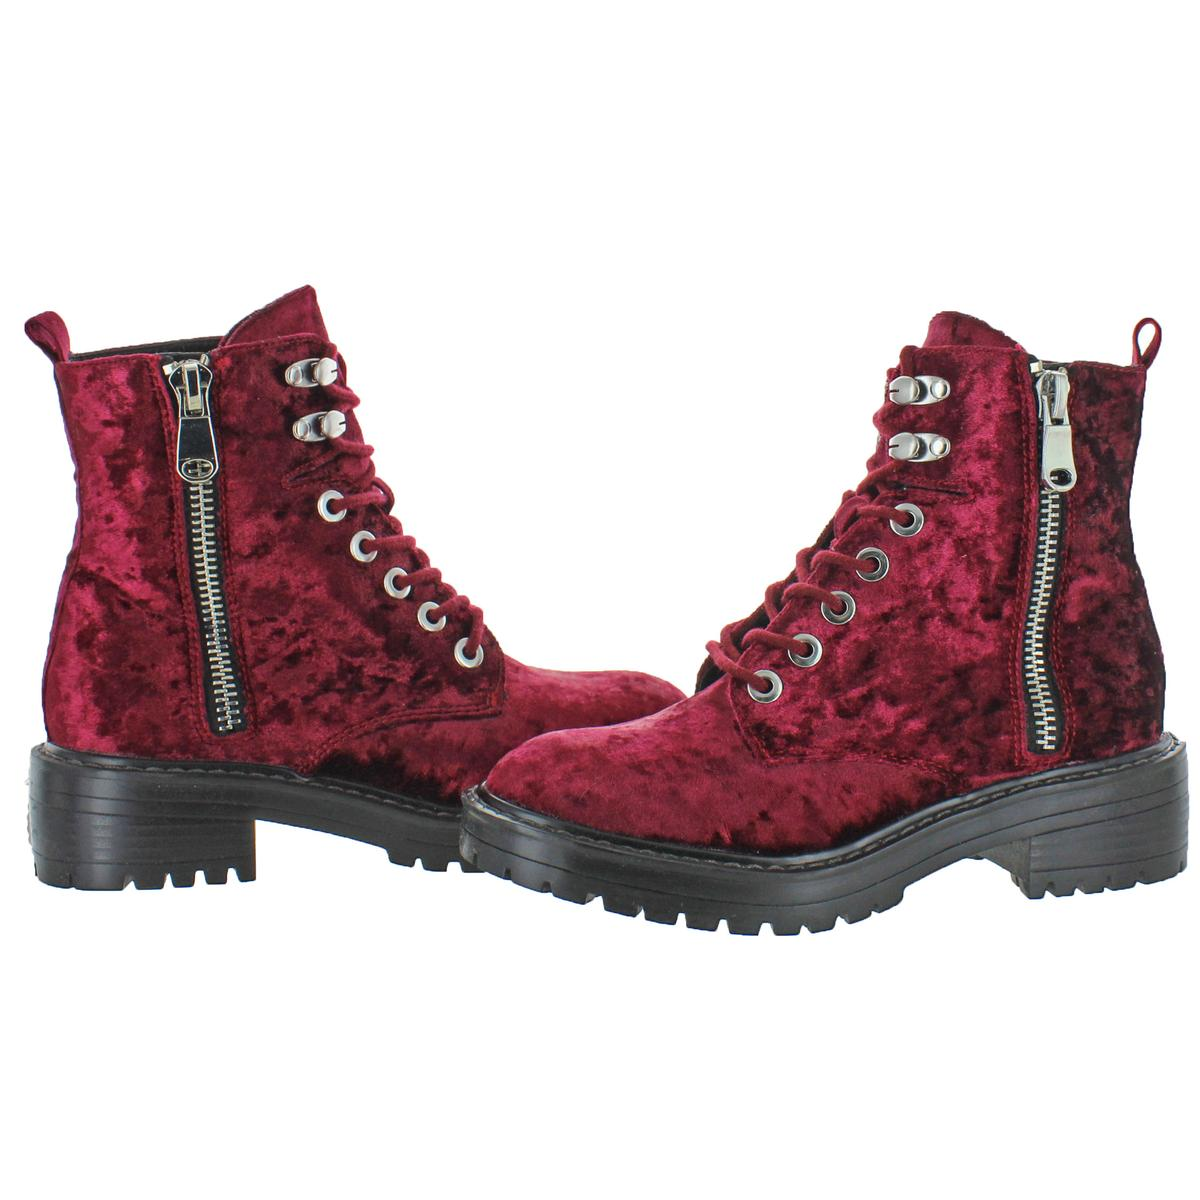 af4c8e89f66 Details about Steve Madden Women's Revive Lace-Up Chunky Heel Ankle Combat  Boots